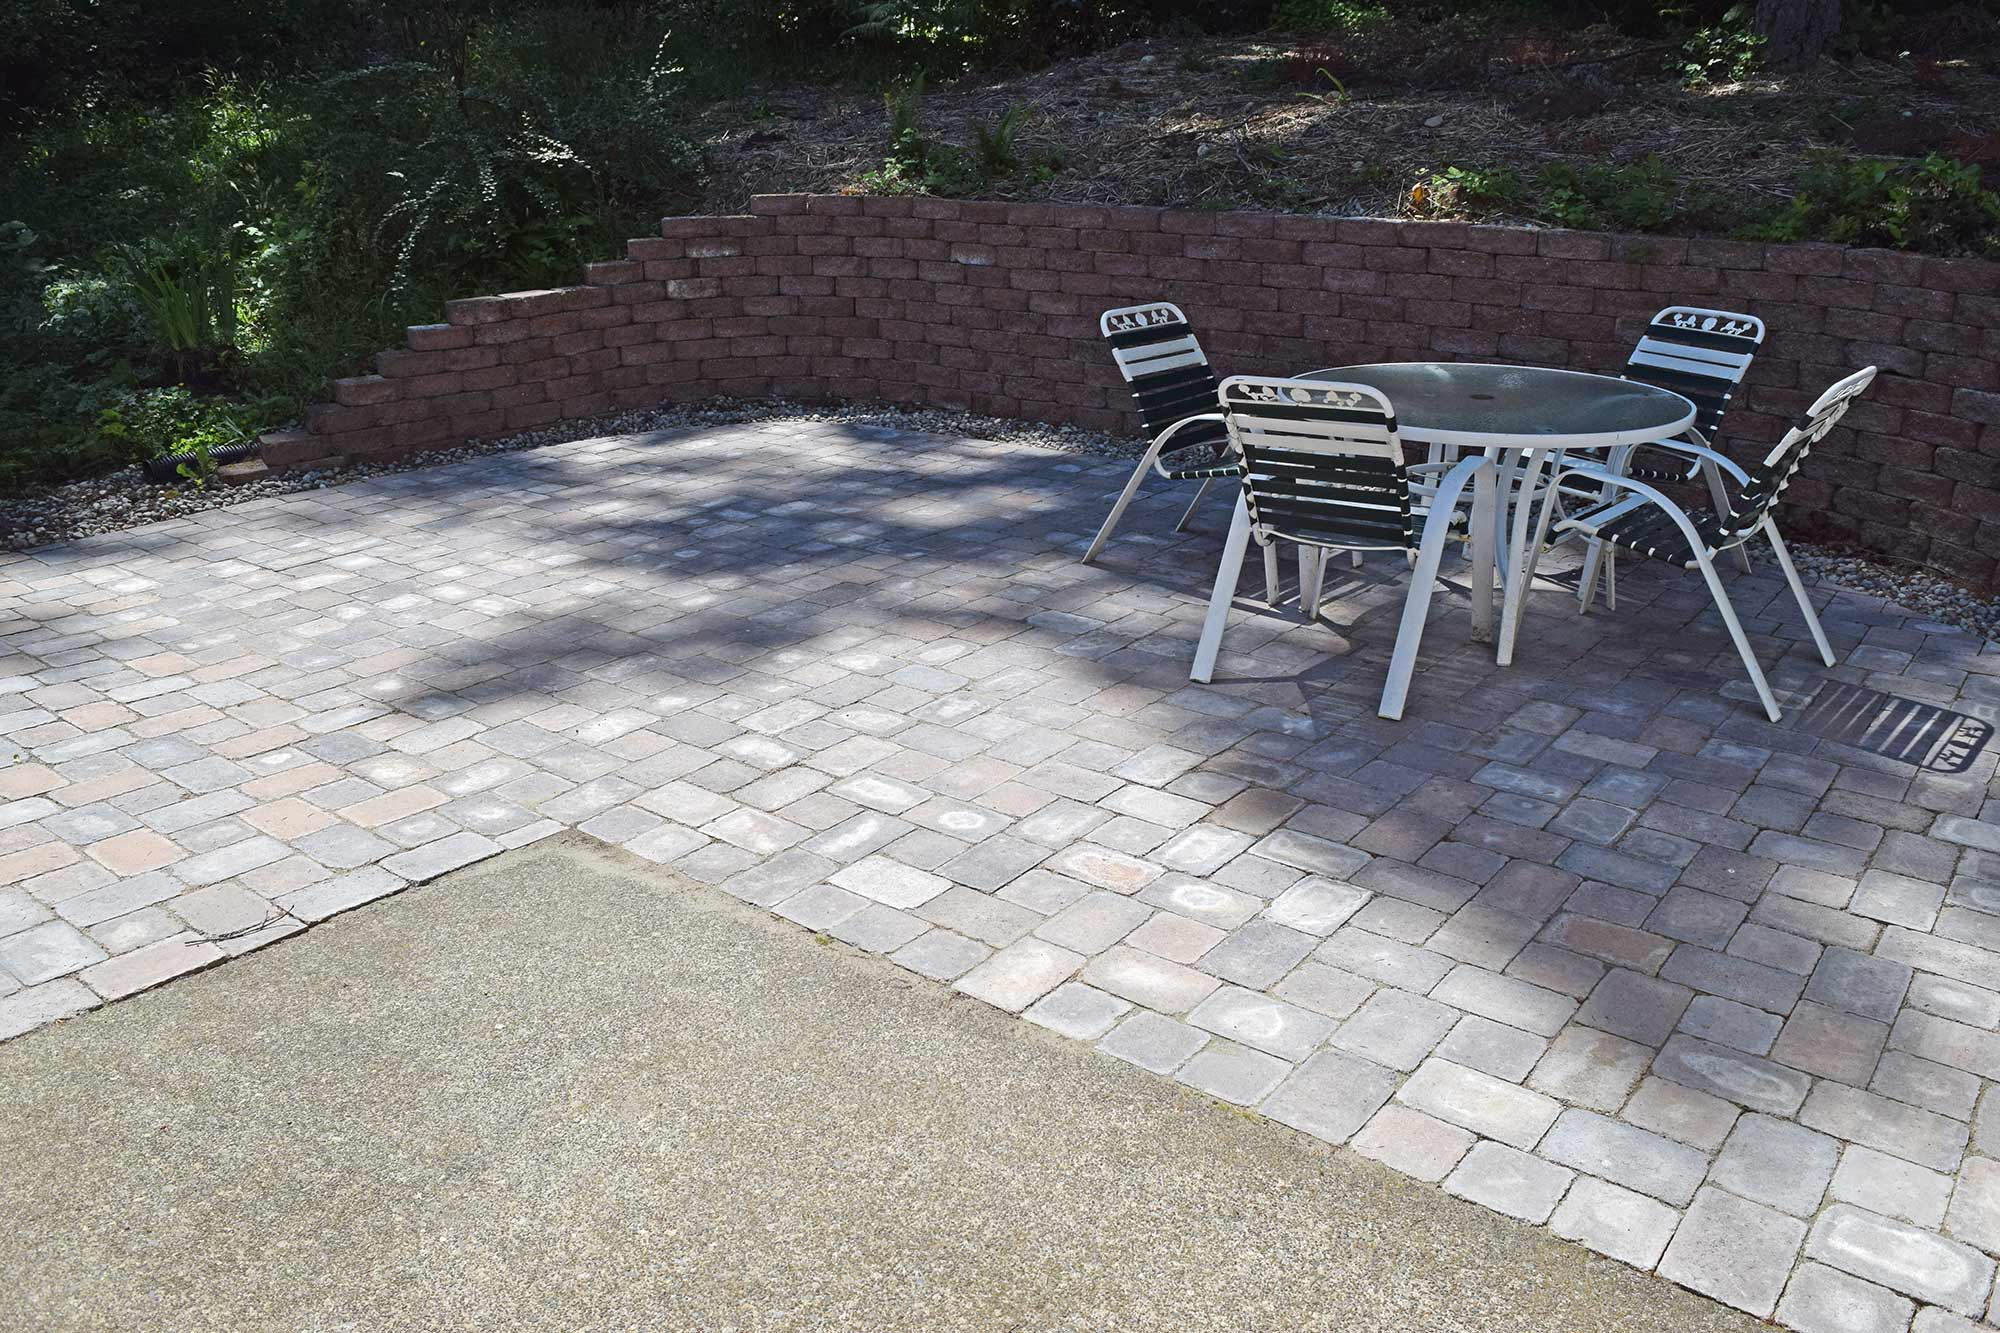 Merveilleux The Paver Patio Extension Provdes A Safe Haven For Jane To Enjoy The  Outdoors And For